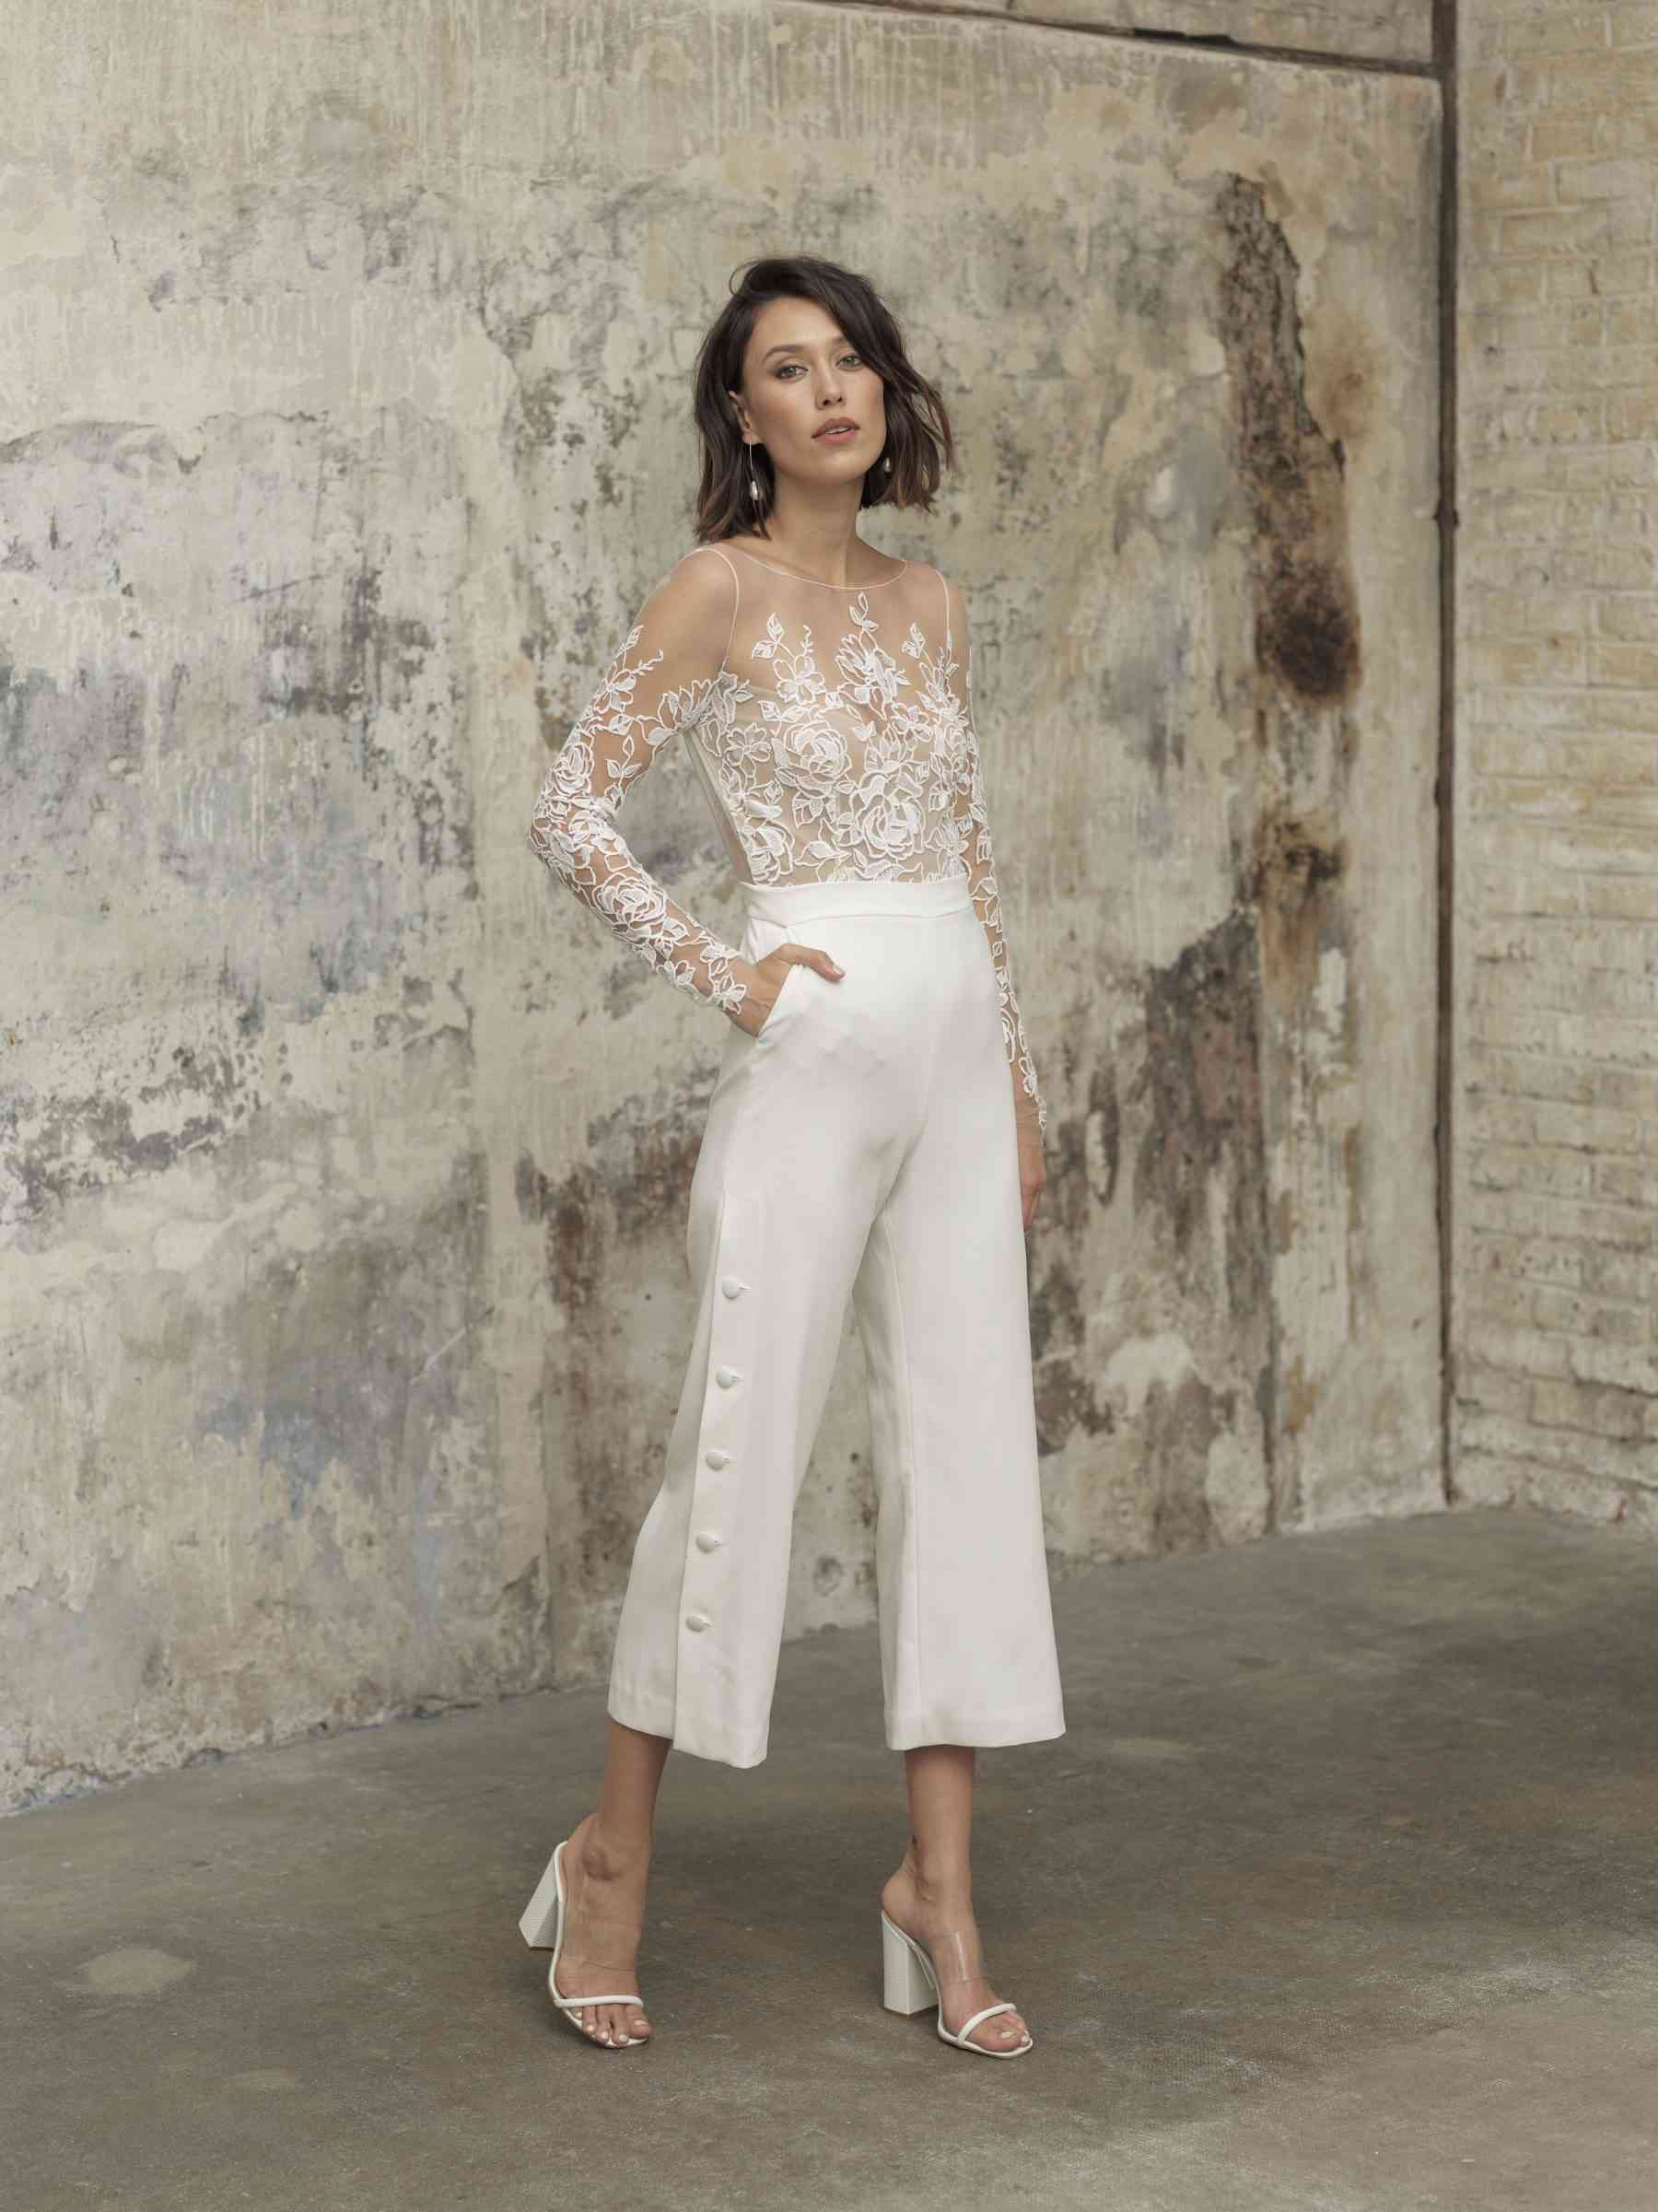 Model in white jumpsuit with lace top and pockets